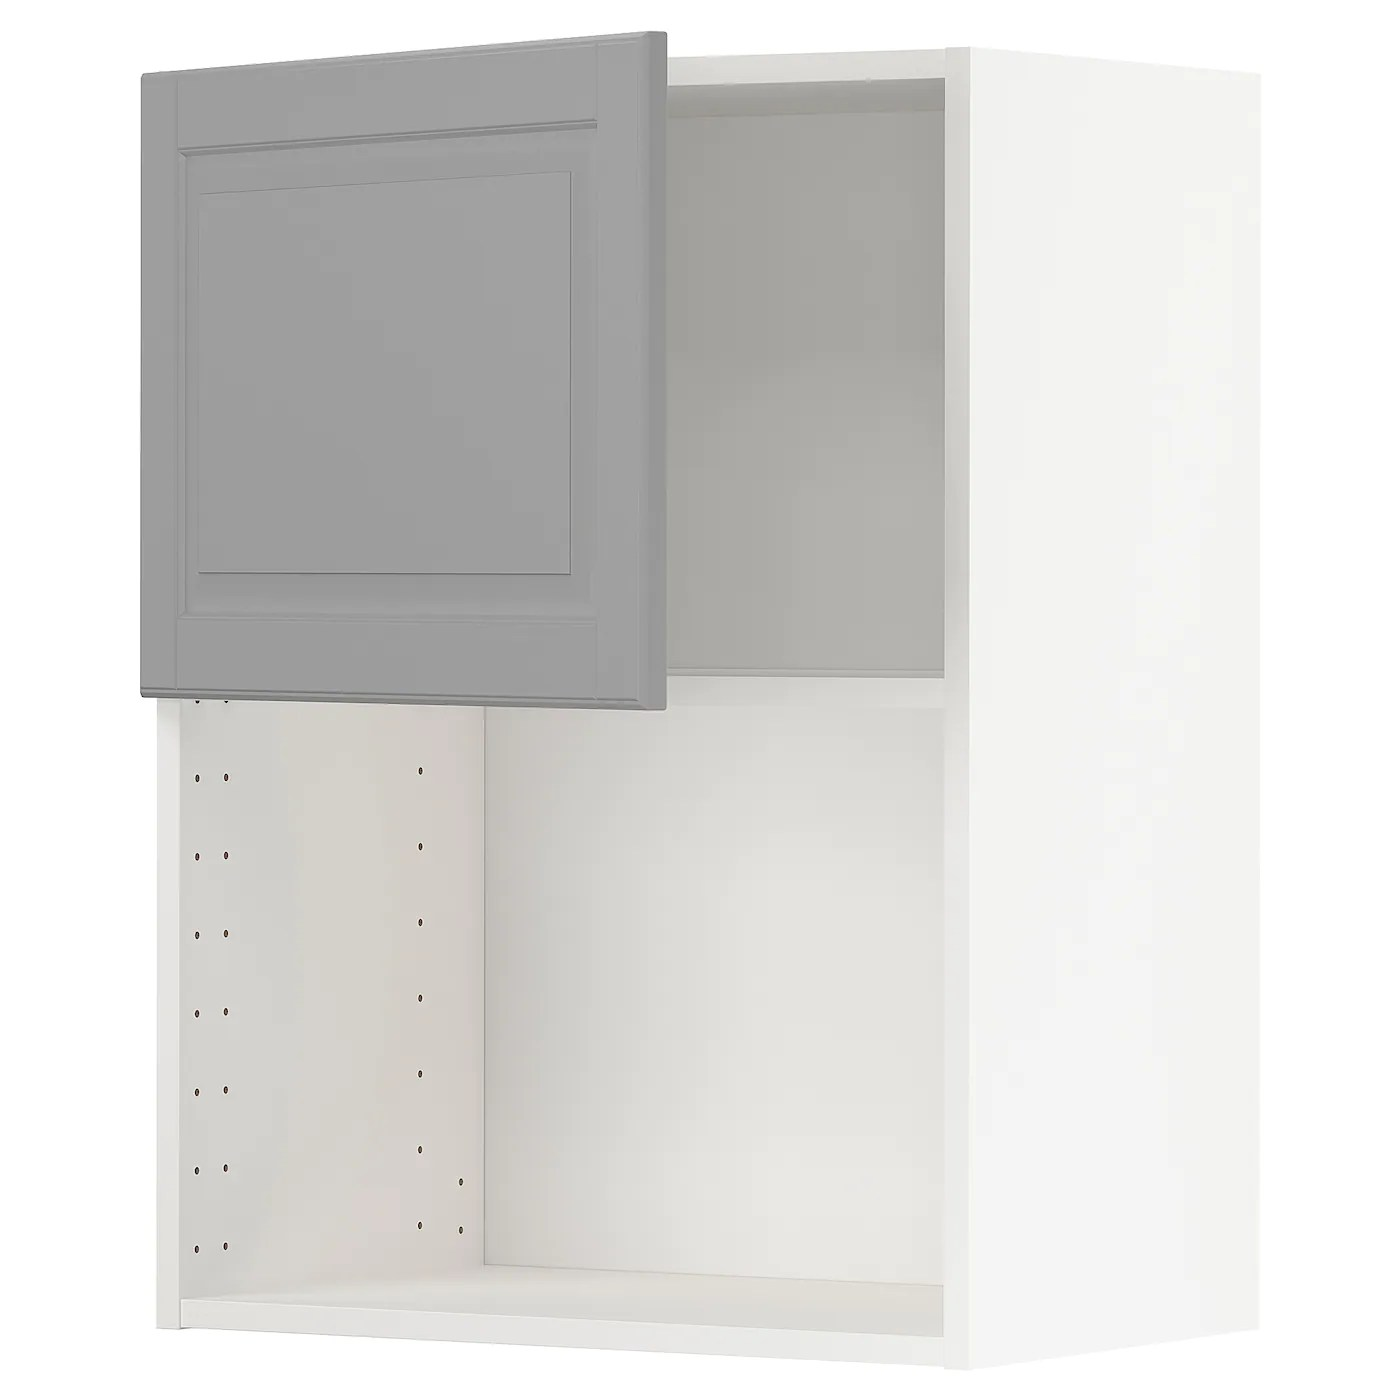 metod wall cabinet for microwave oven white bodbyn grey 60x37x80 cm